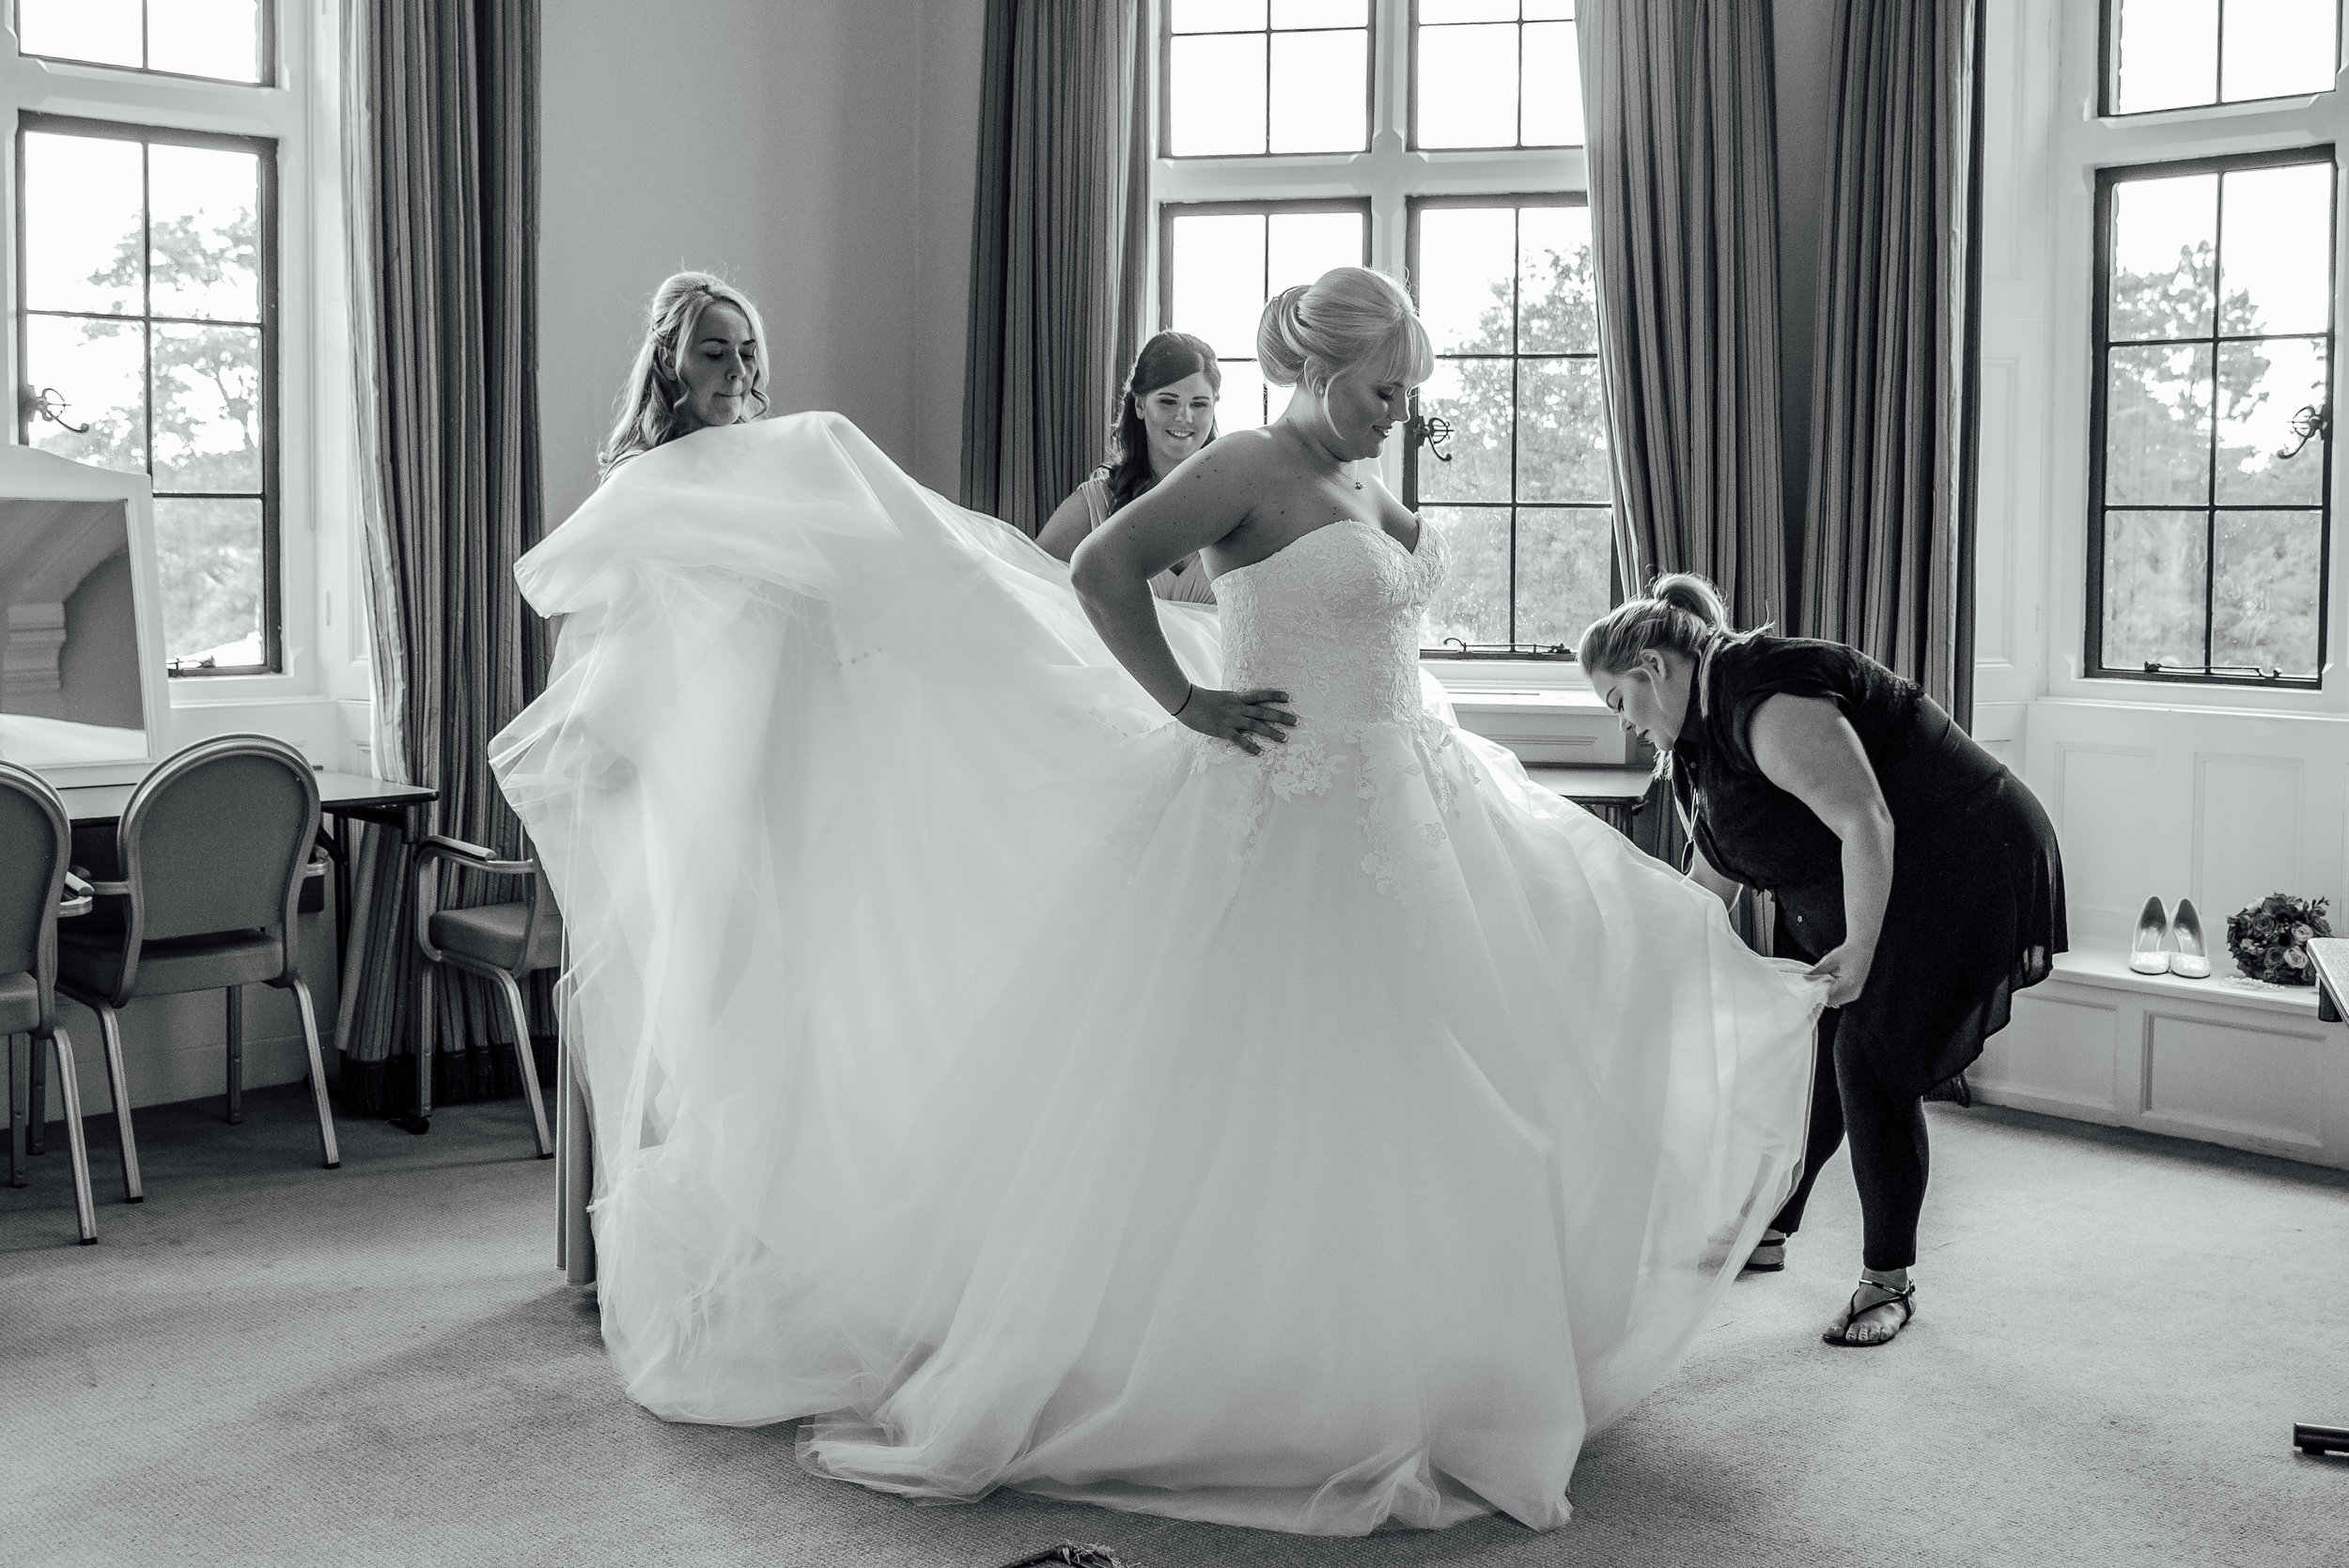 Bridesmaids helping bride into free at The Elvetham Wedding venue - by Amy James Photography- Hampshire Wedding Photographer